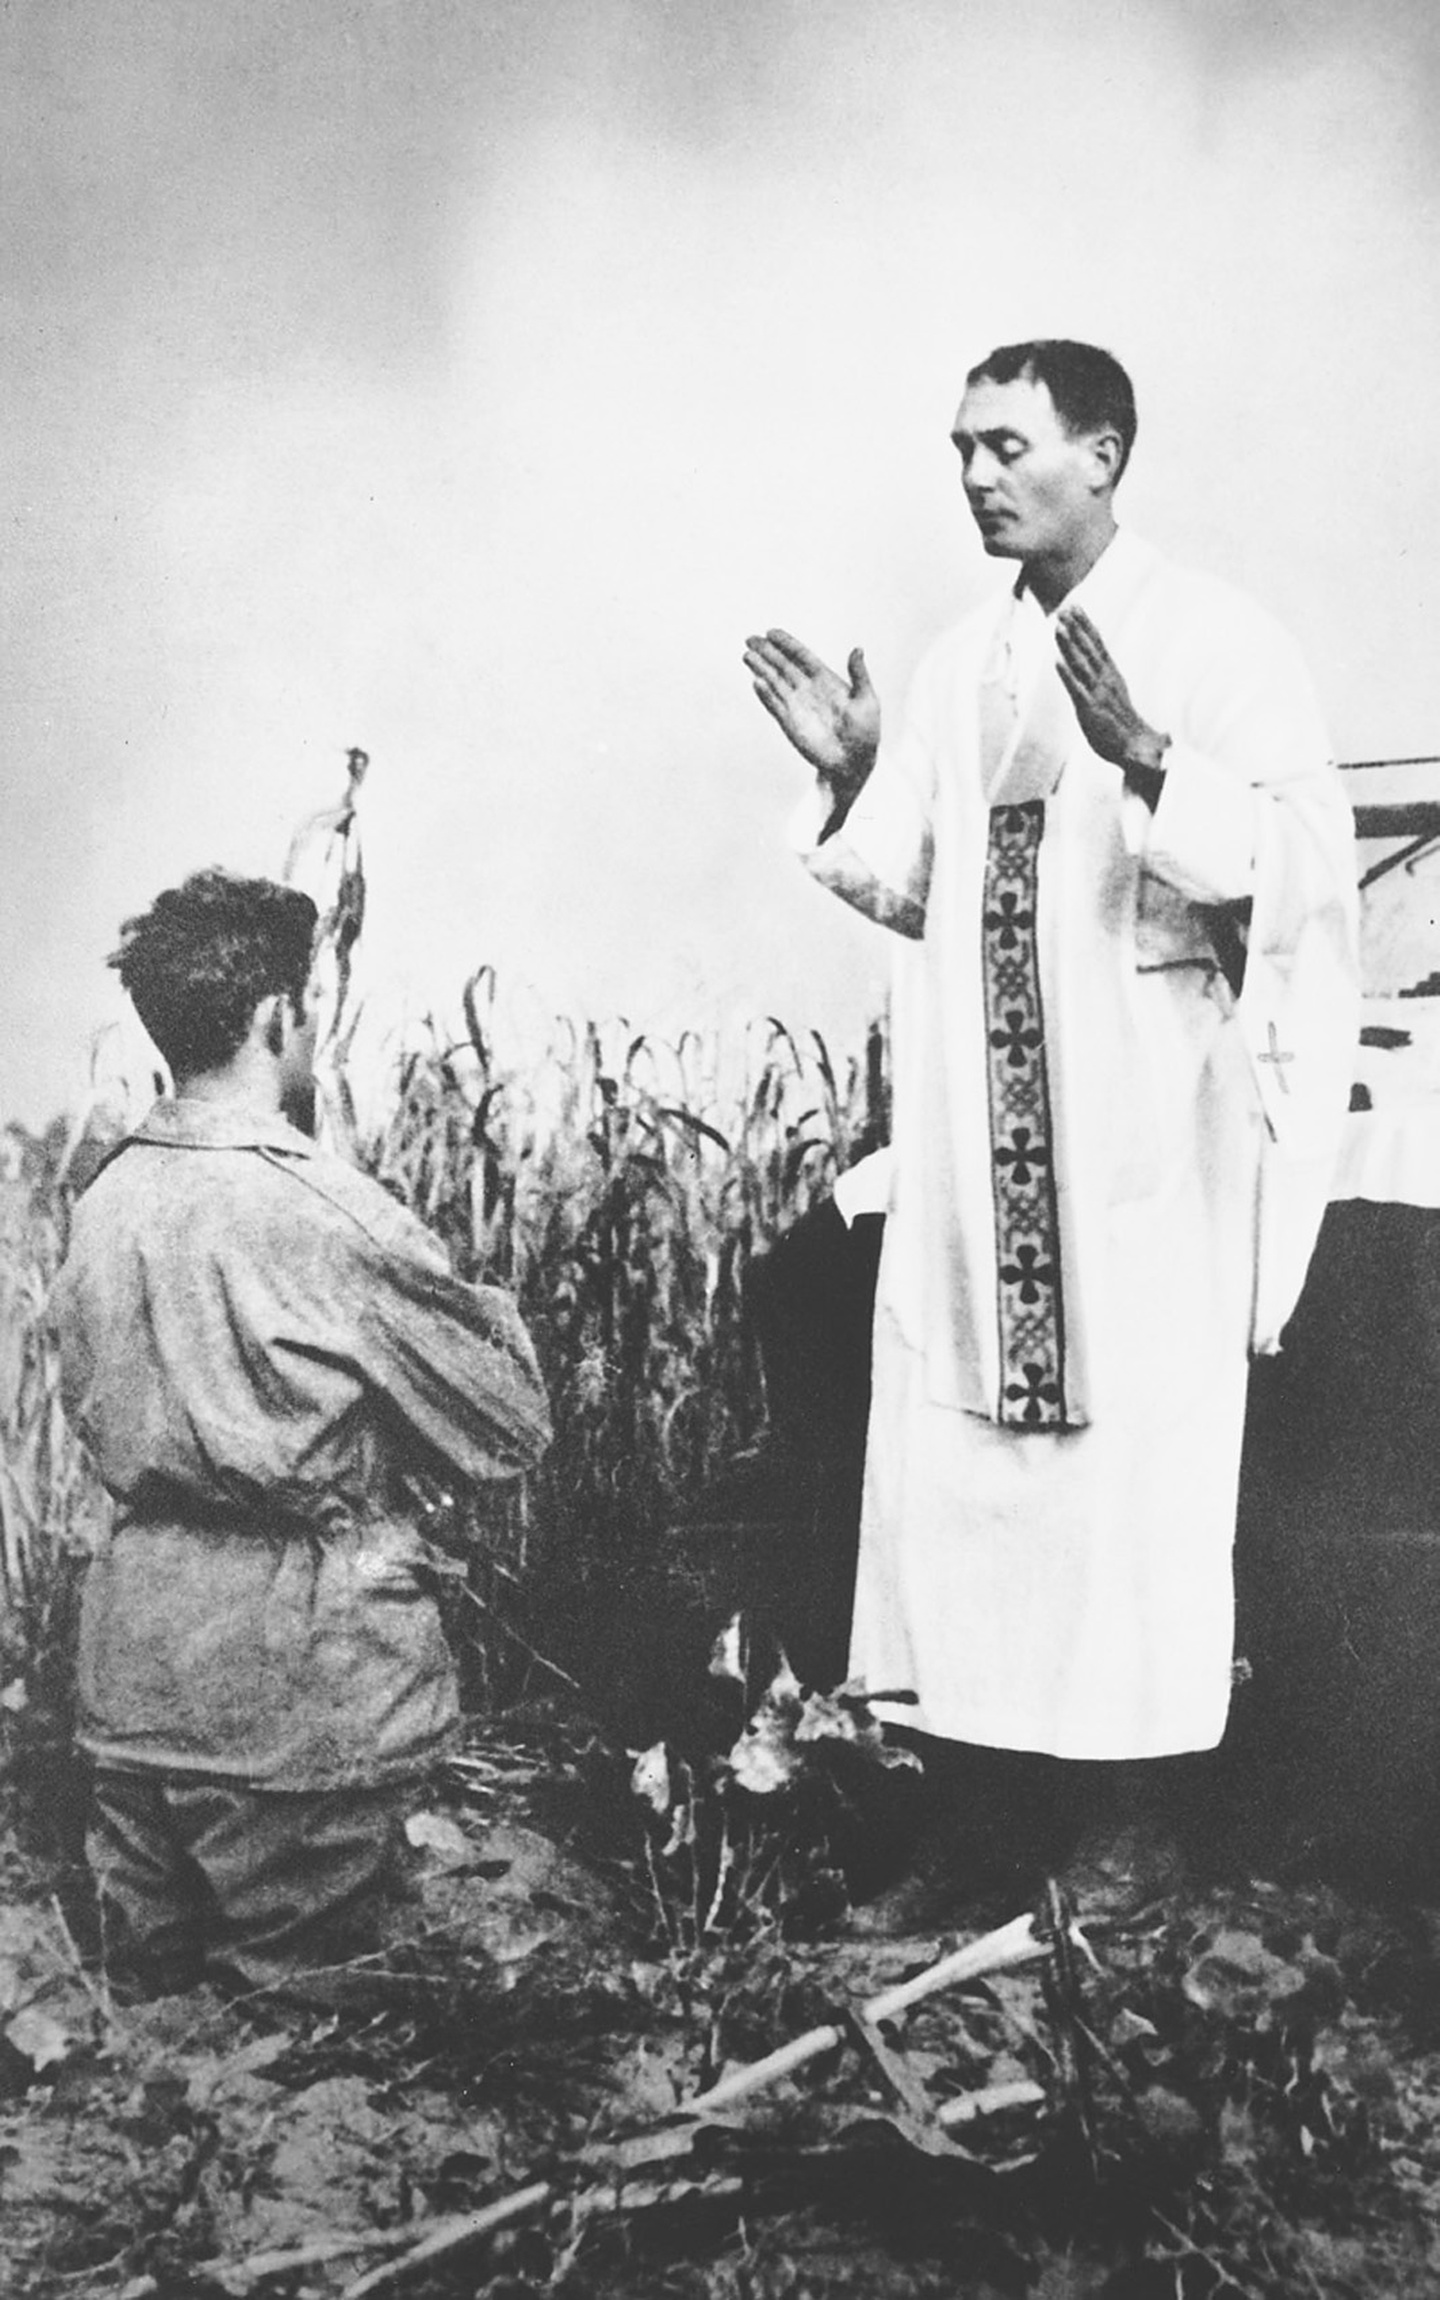 Priest who died serving as chaplain in Korean War to be awarded Medal of Honor